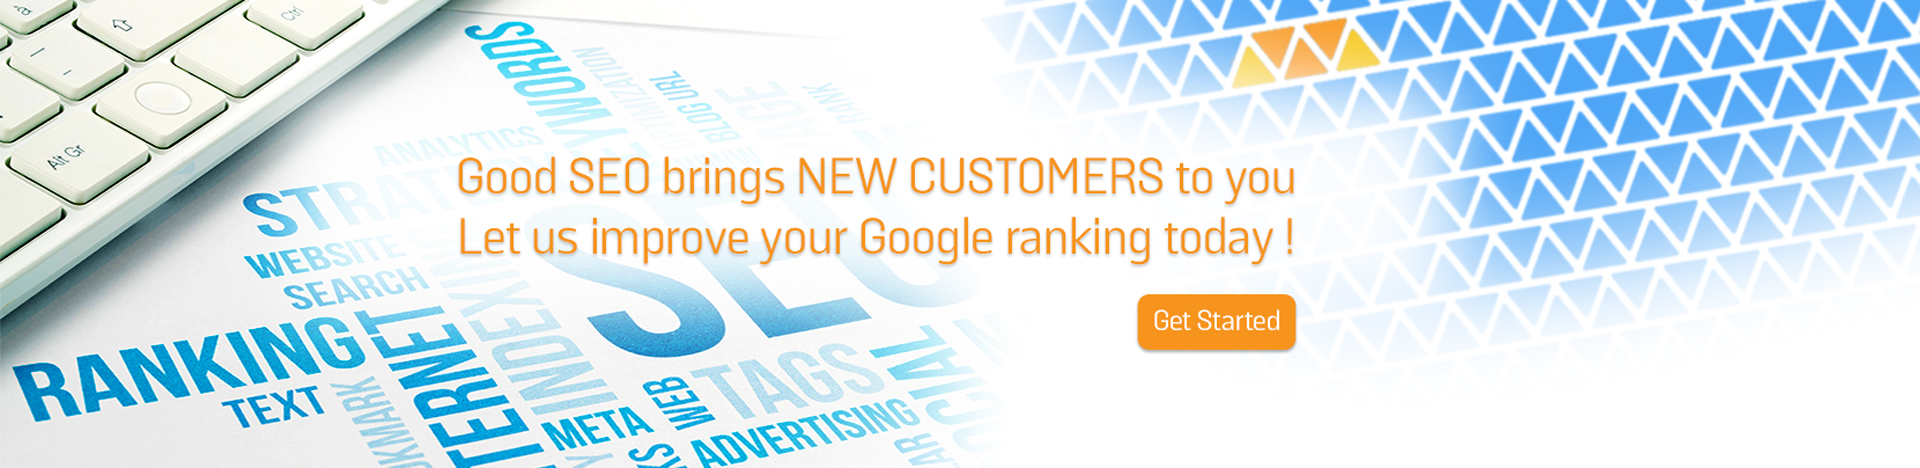 Good SEO brings new customers to you.